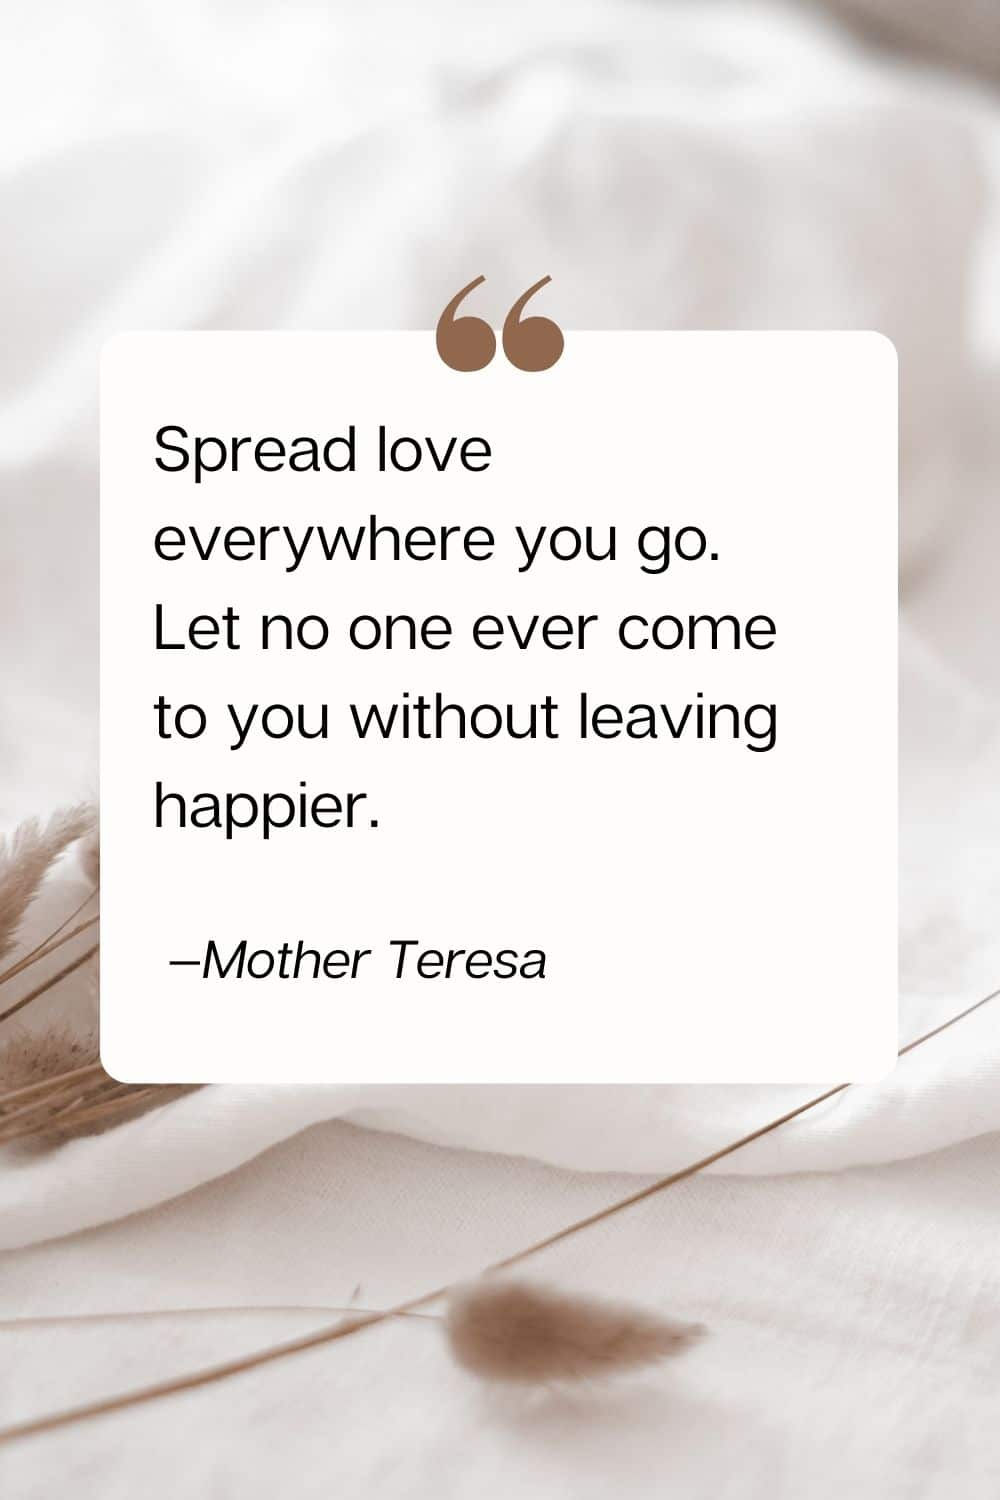 quote - Spread love everywhere you go. Let no one ever come to you without leaving happier. —Mother Teresa